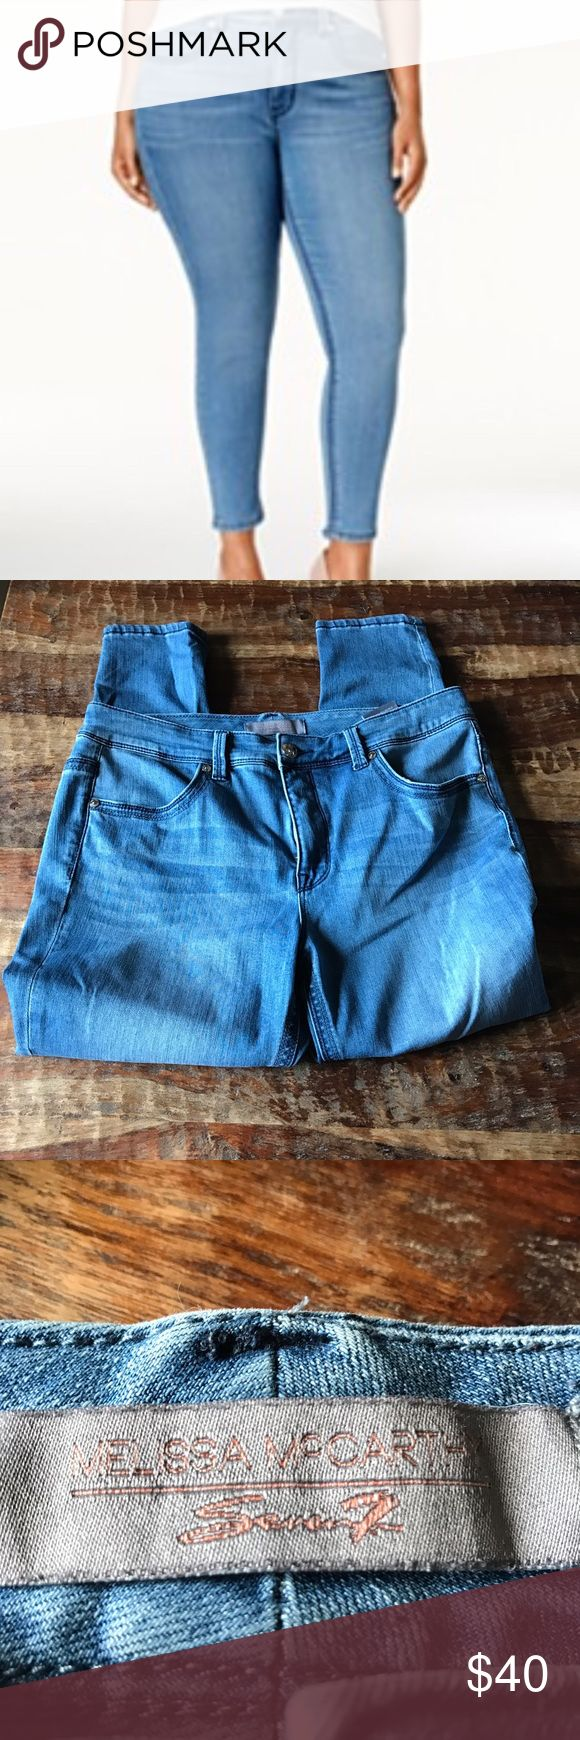 "Seven7 Melissa McCarthy Skinny Jeans In excellent condition with no visible signs of wear. Waist is 19""across laying flat and inseam is 27"" Seven7 Jeans Skinny"